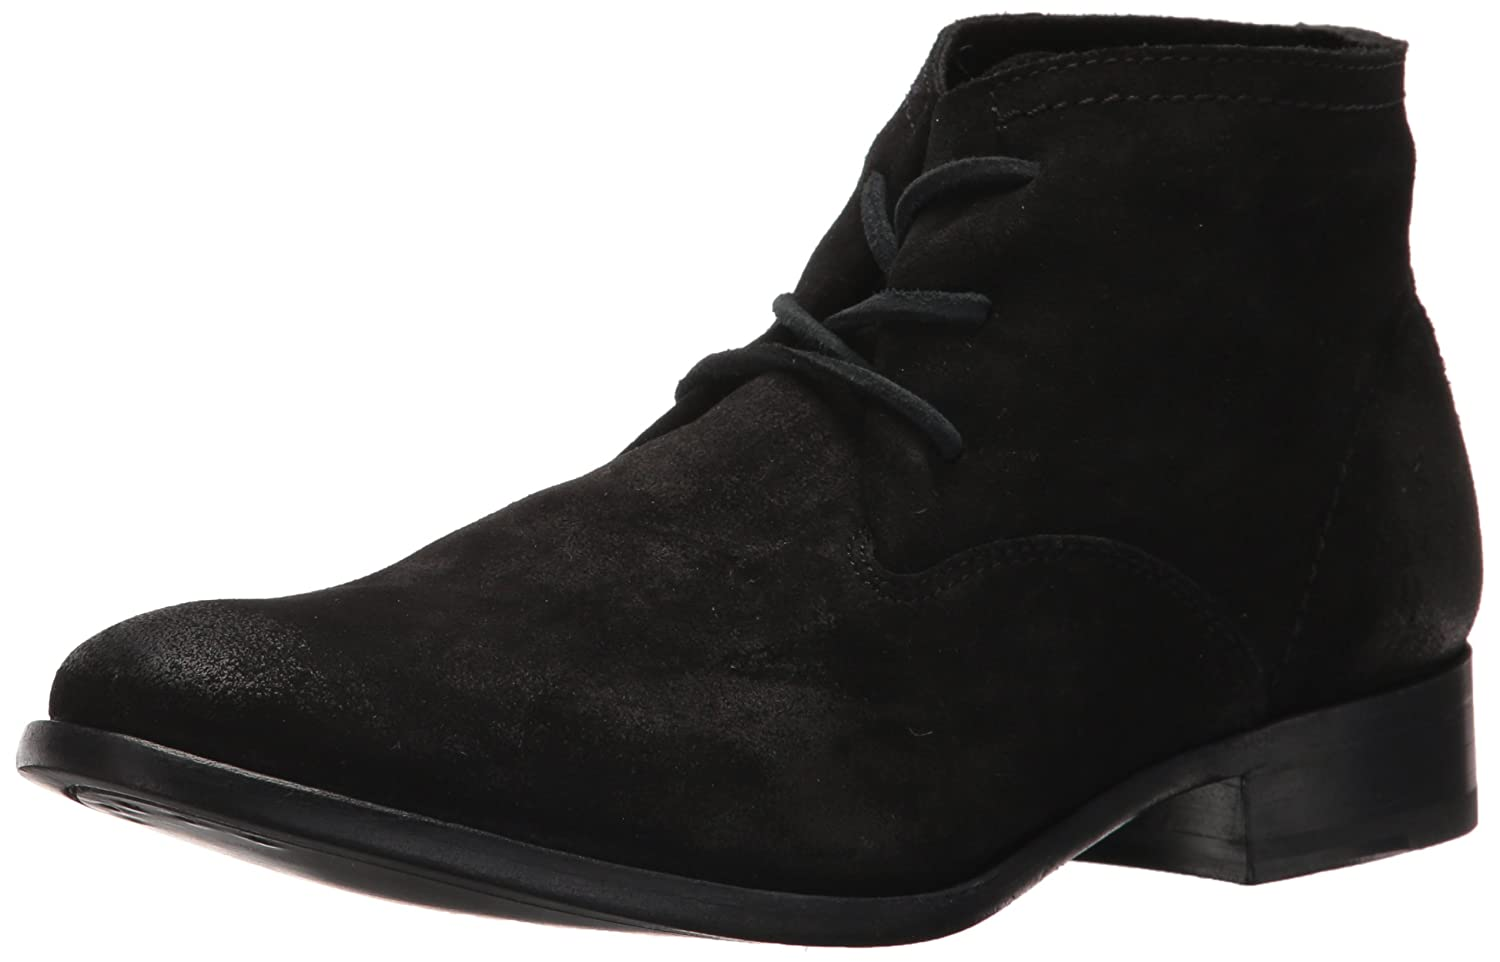 FRYE Women's Carly Chukka Boot B071G6M4PT 11 B(M) US|Black